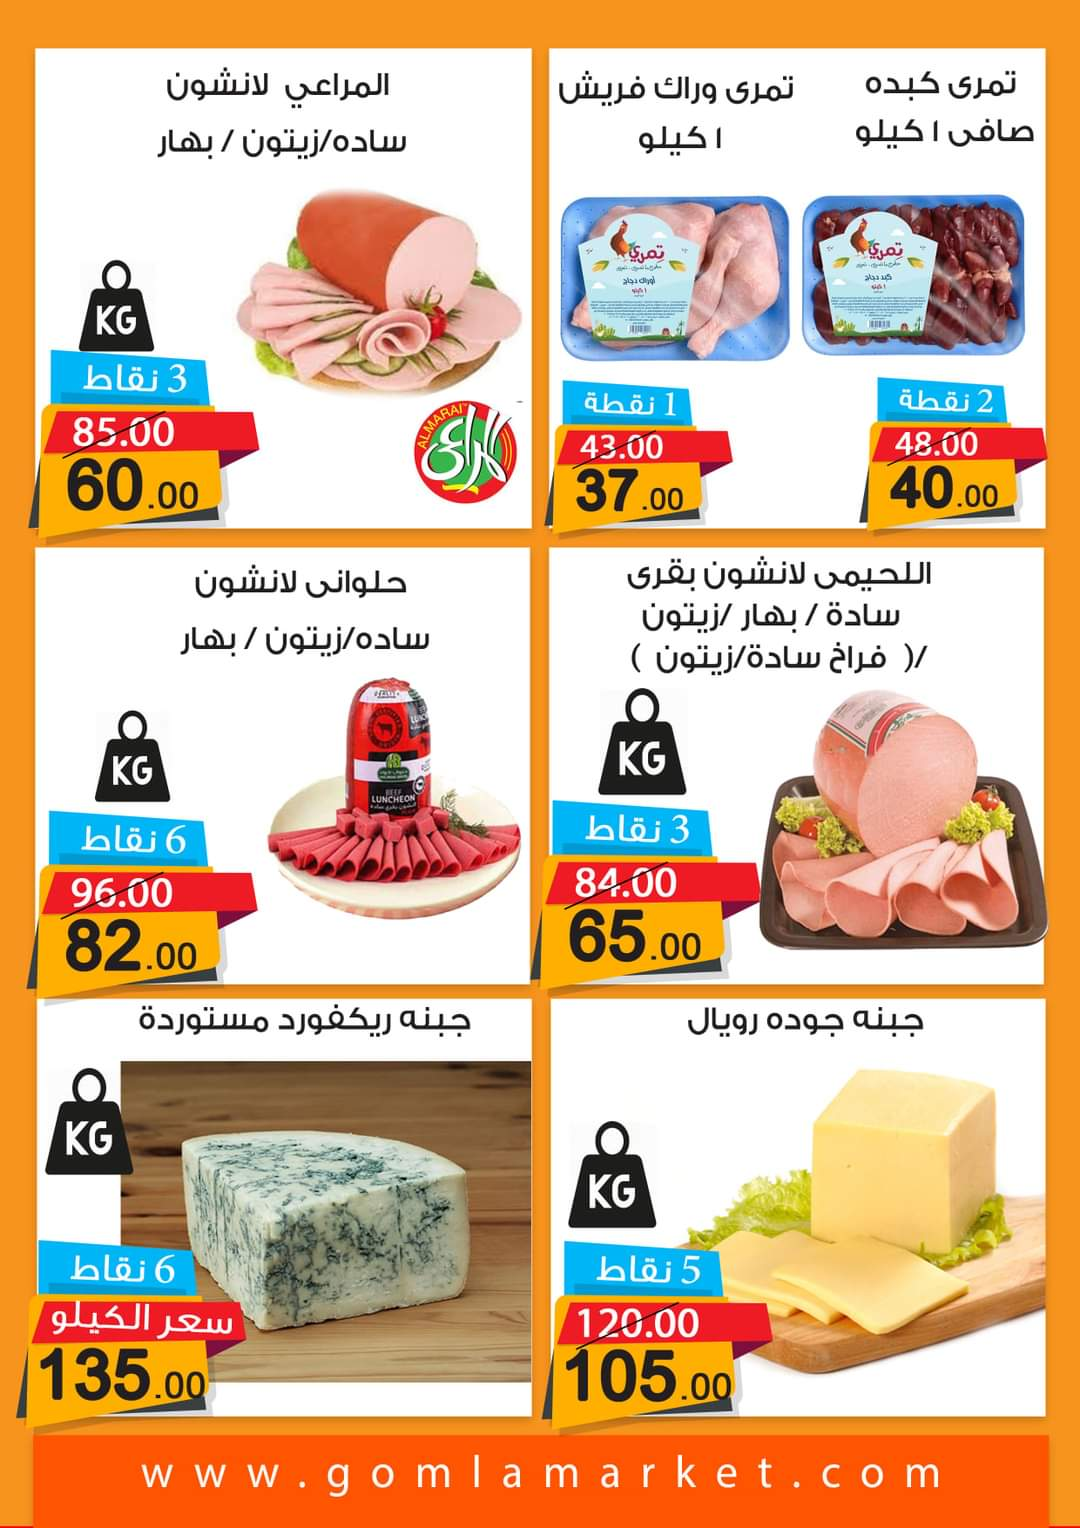 Wholesale Market offers and discounts